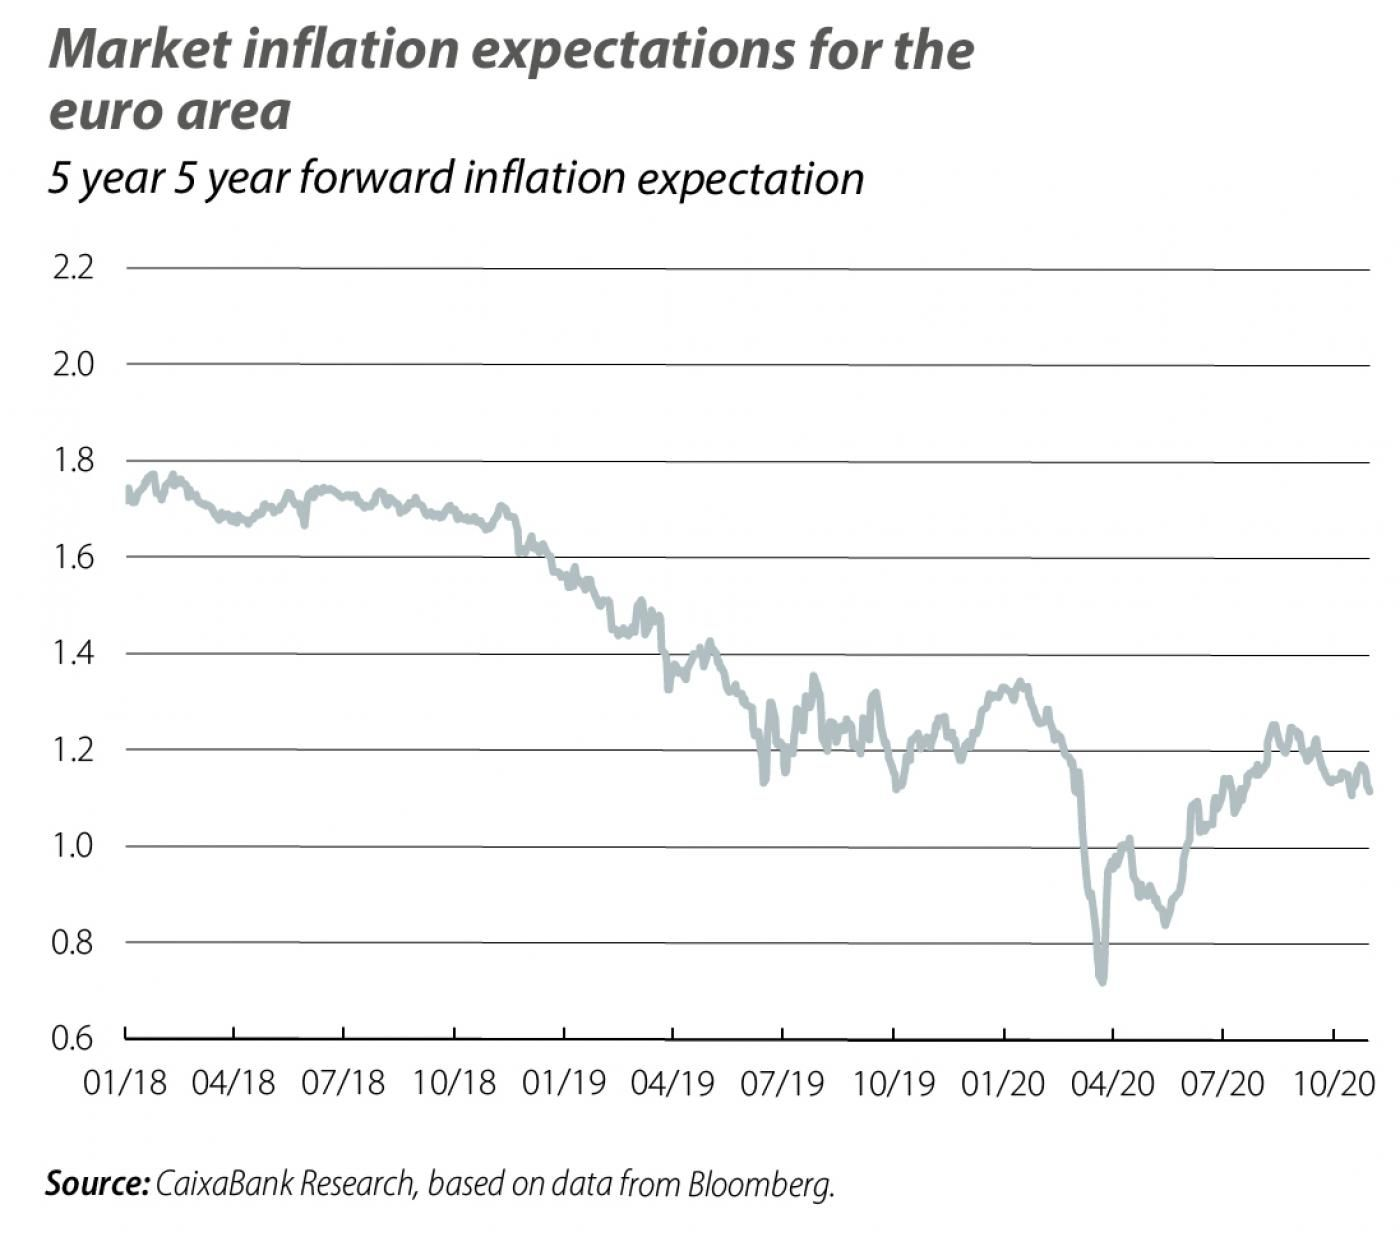 Market inflation expectations for the euro area